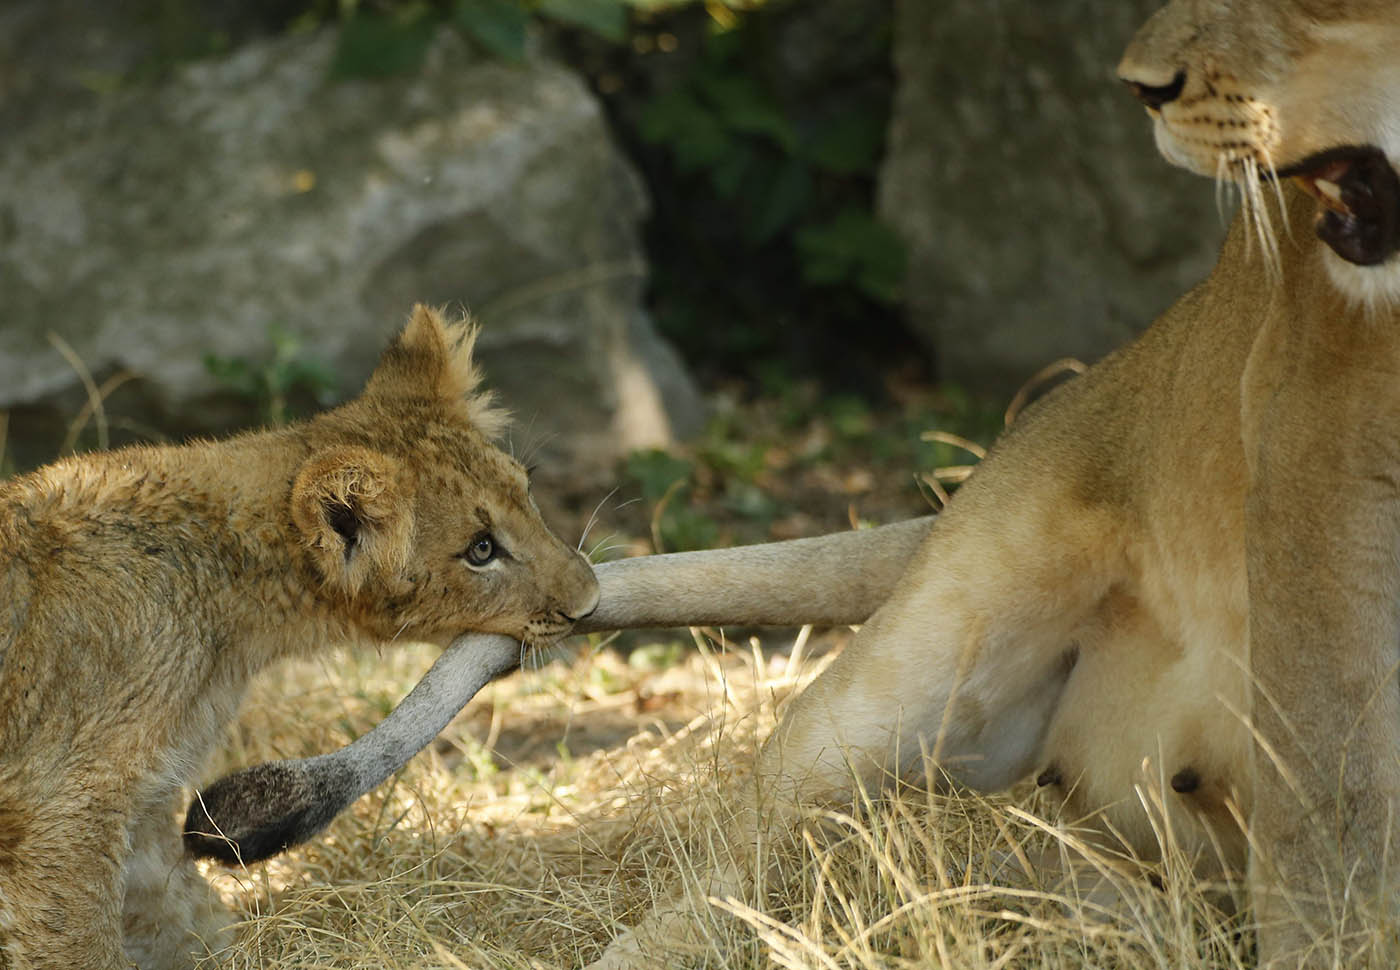 One of three new lion cubs, born May 12, gives a tug on the tail of mother Lusaka while playing in their enclosure at the Buffalo Zoo Wednesday, Aug. 3, 2016.  The cubs will be unveiled at the Zoo this Saturday, along with their names, one of which is open for voting on the zoo's website.  (Photo by Derek Gee)